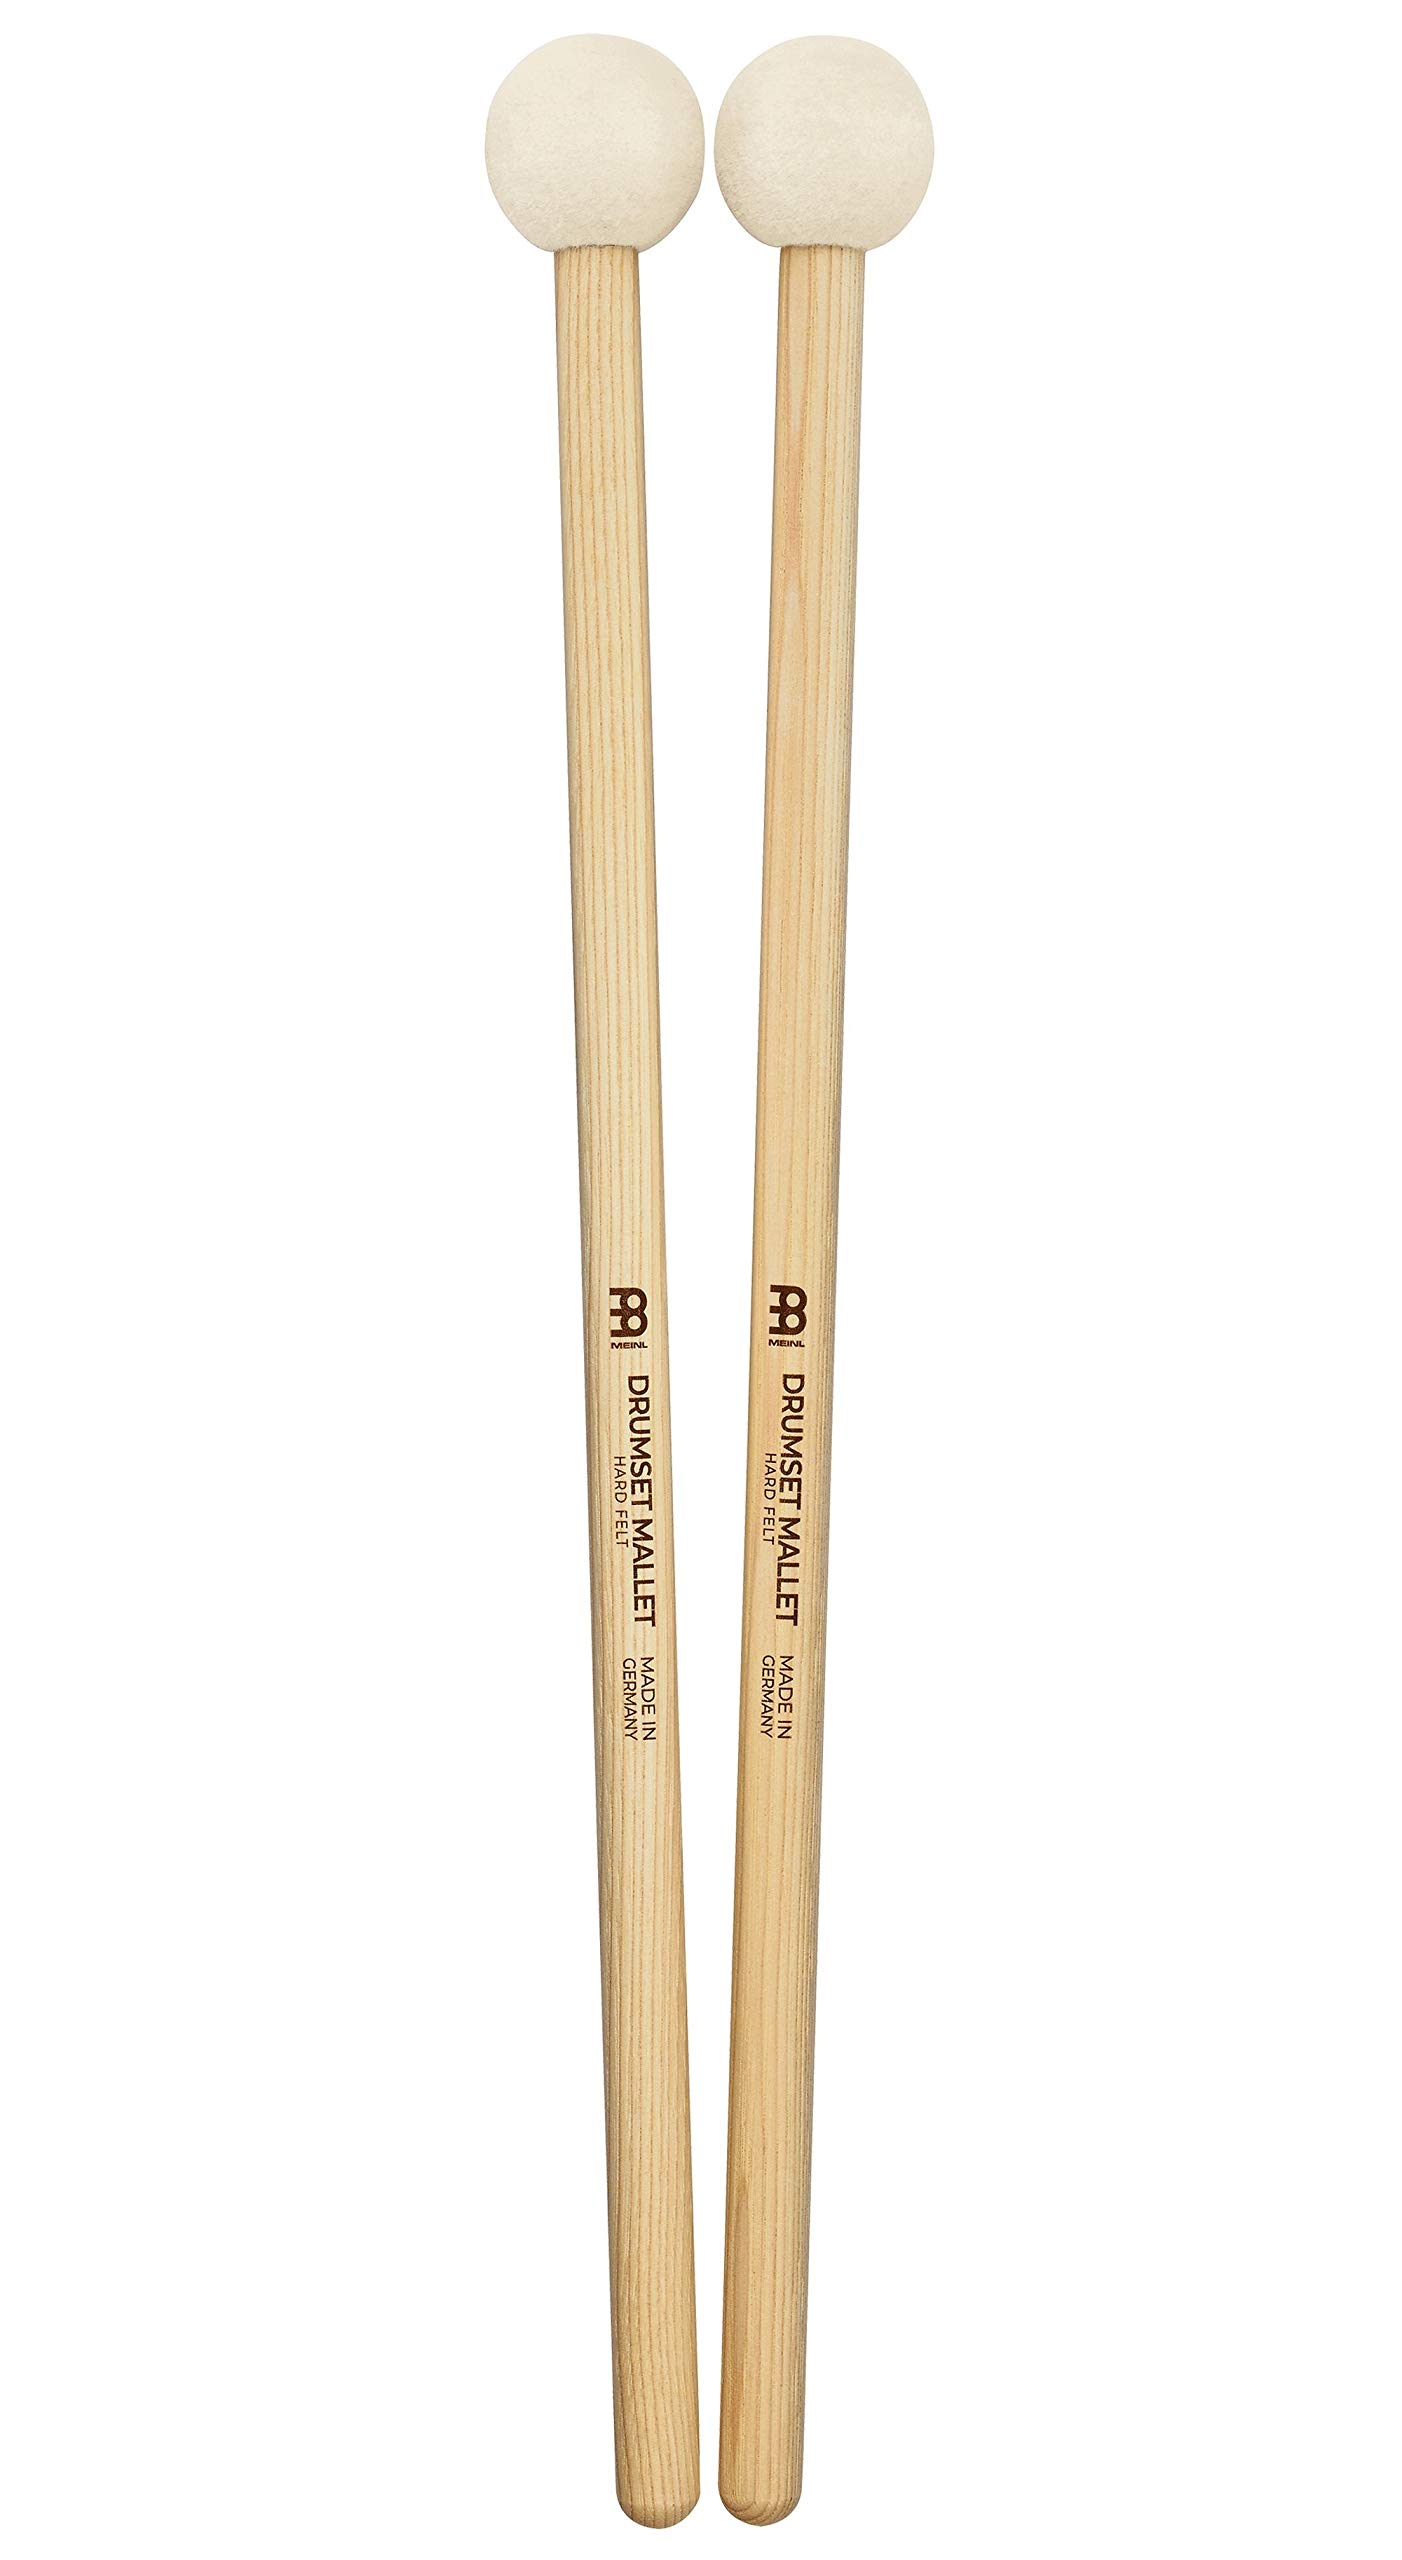 Meinl Stick & Brush Drum Set Mallets With Hard Felt Head & 5A American Hickory Handle - Made in GERMANY SB402